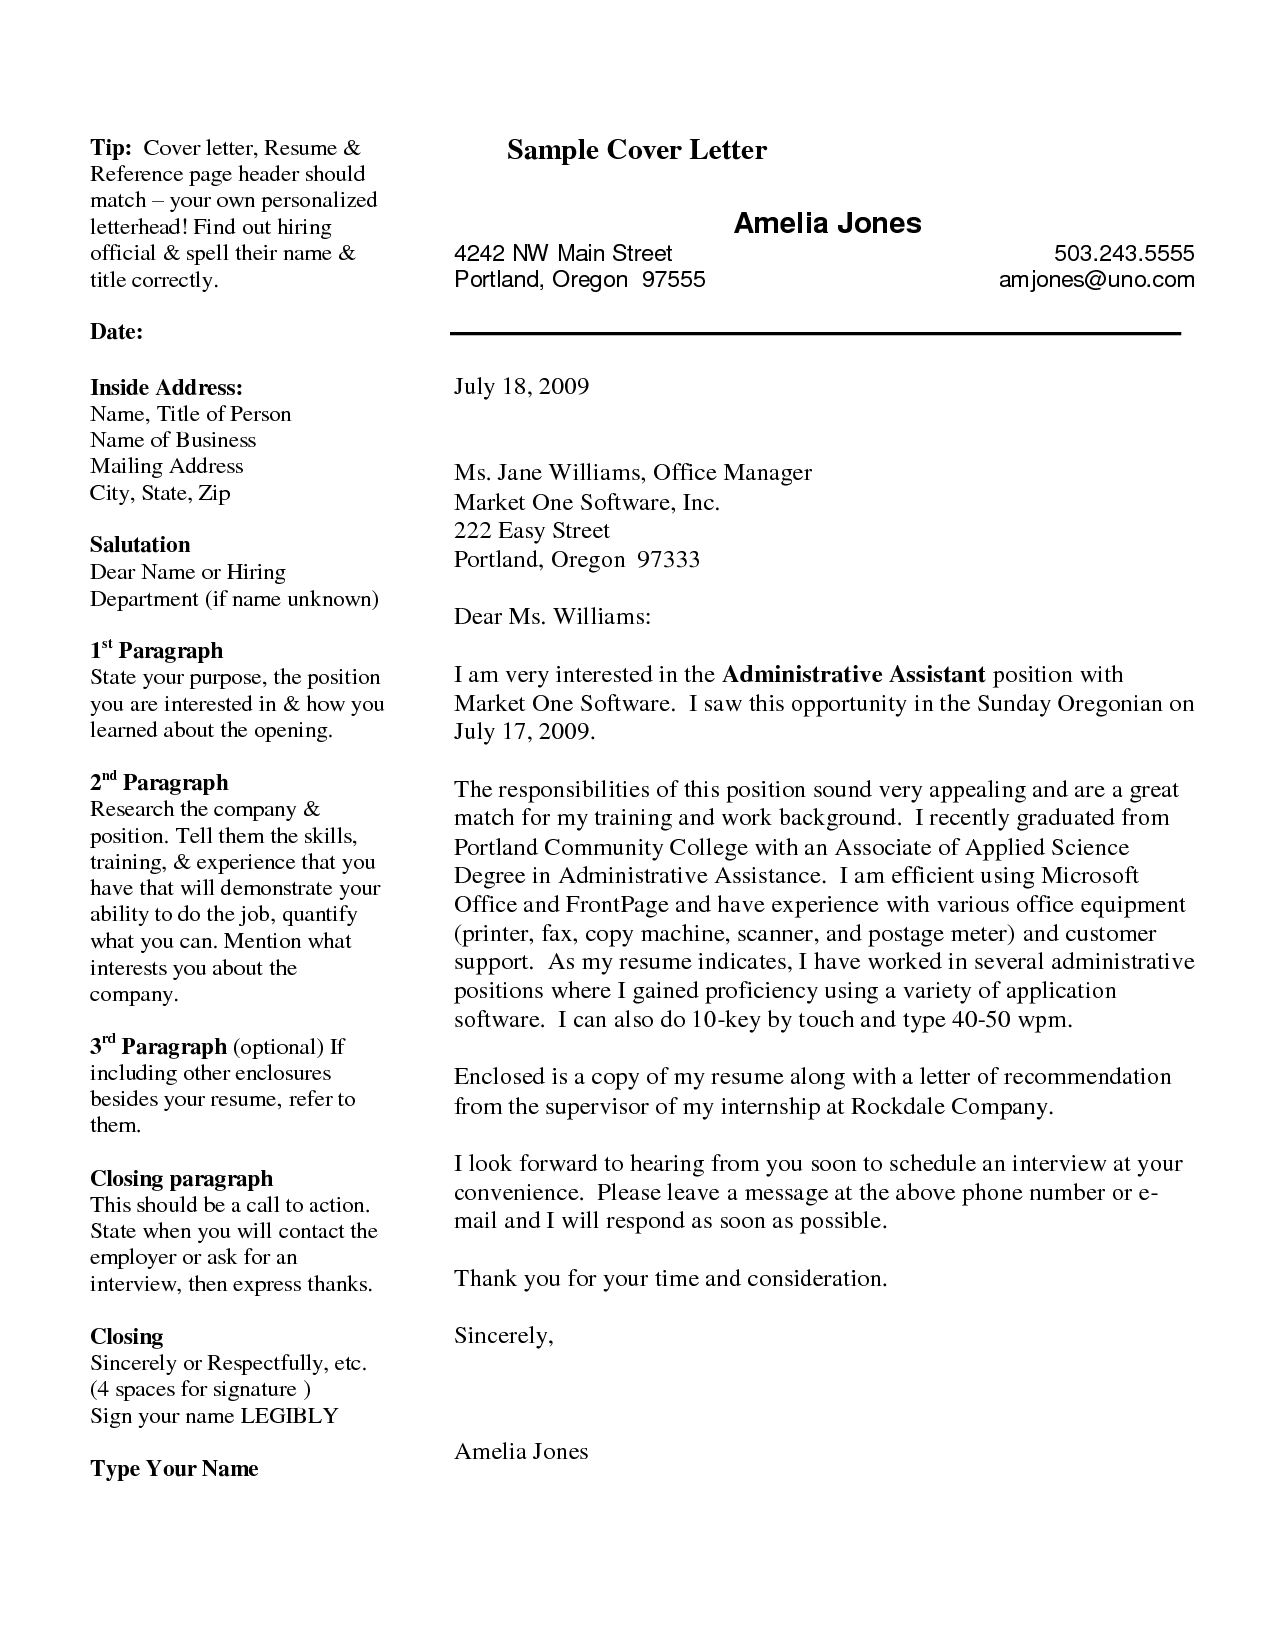 Professional Resume Cover Letter SamplesProfessional Resume Cover ...